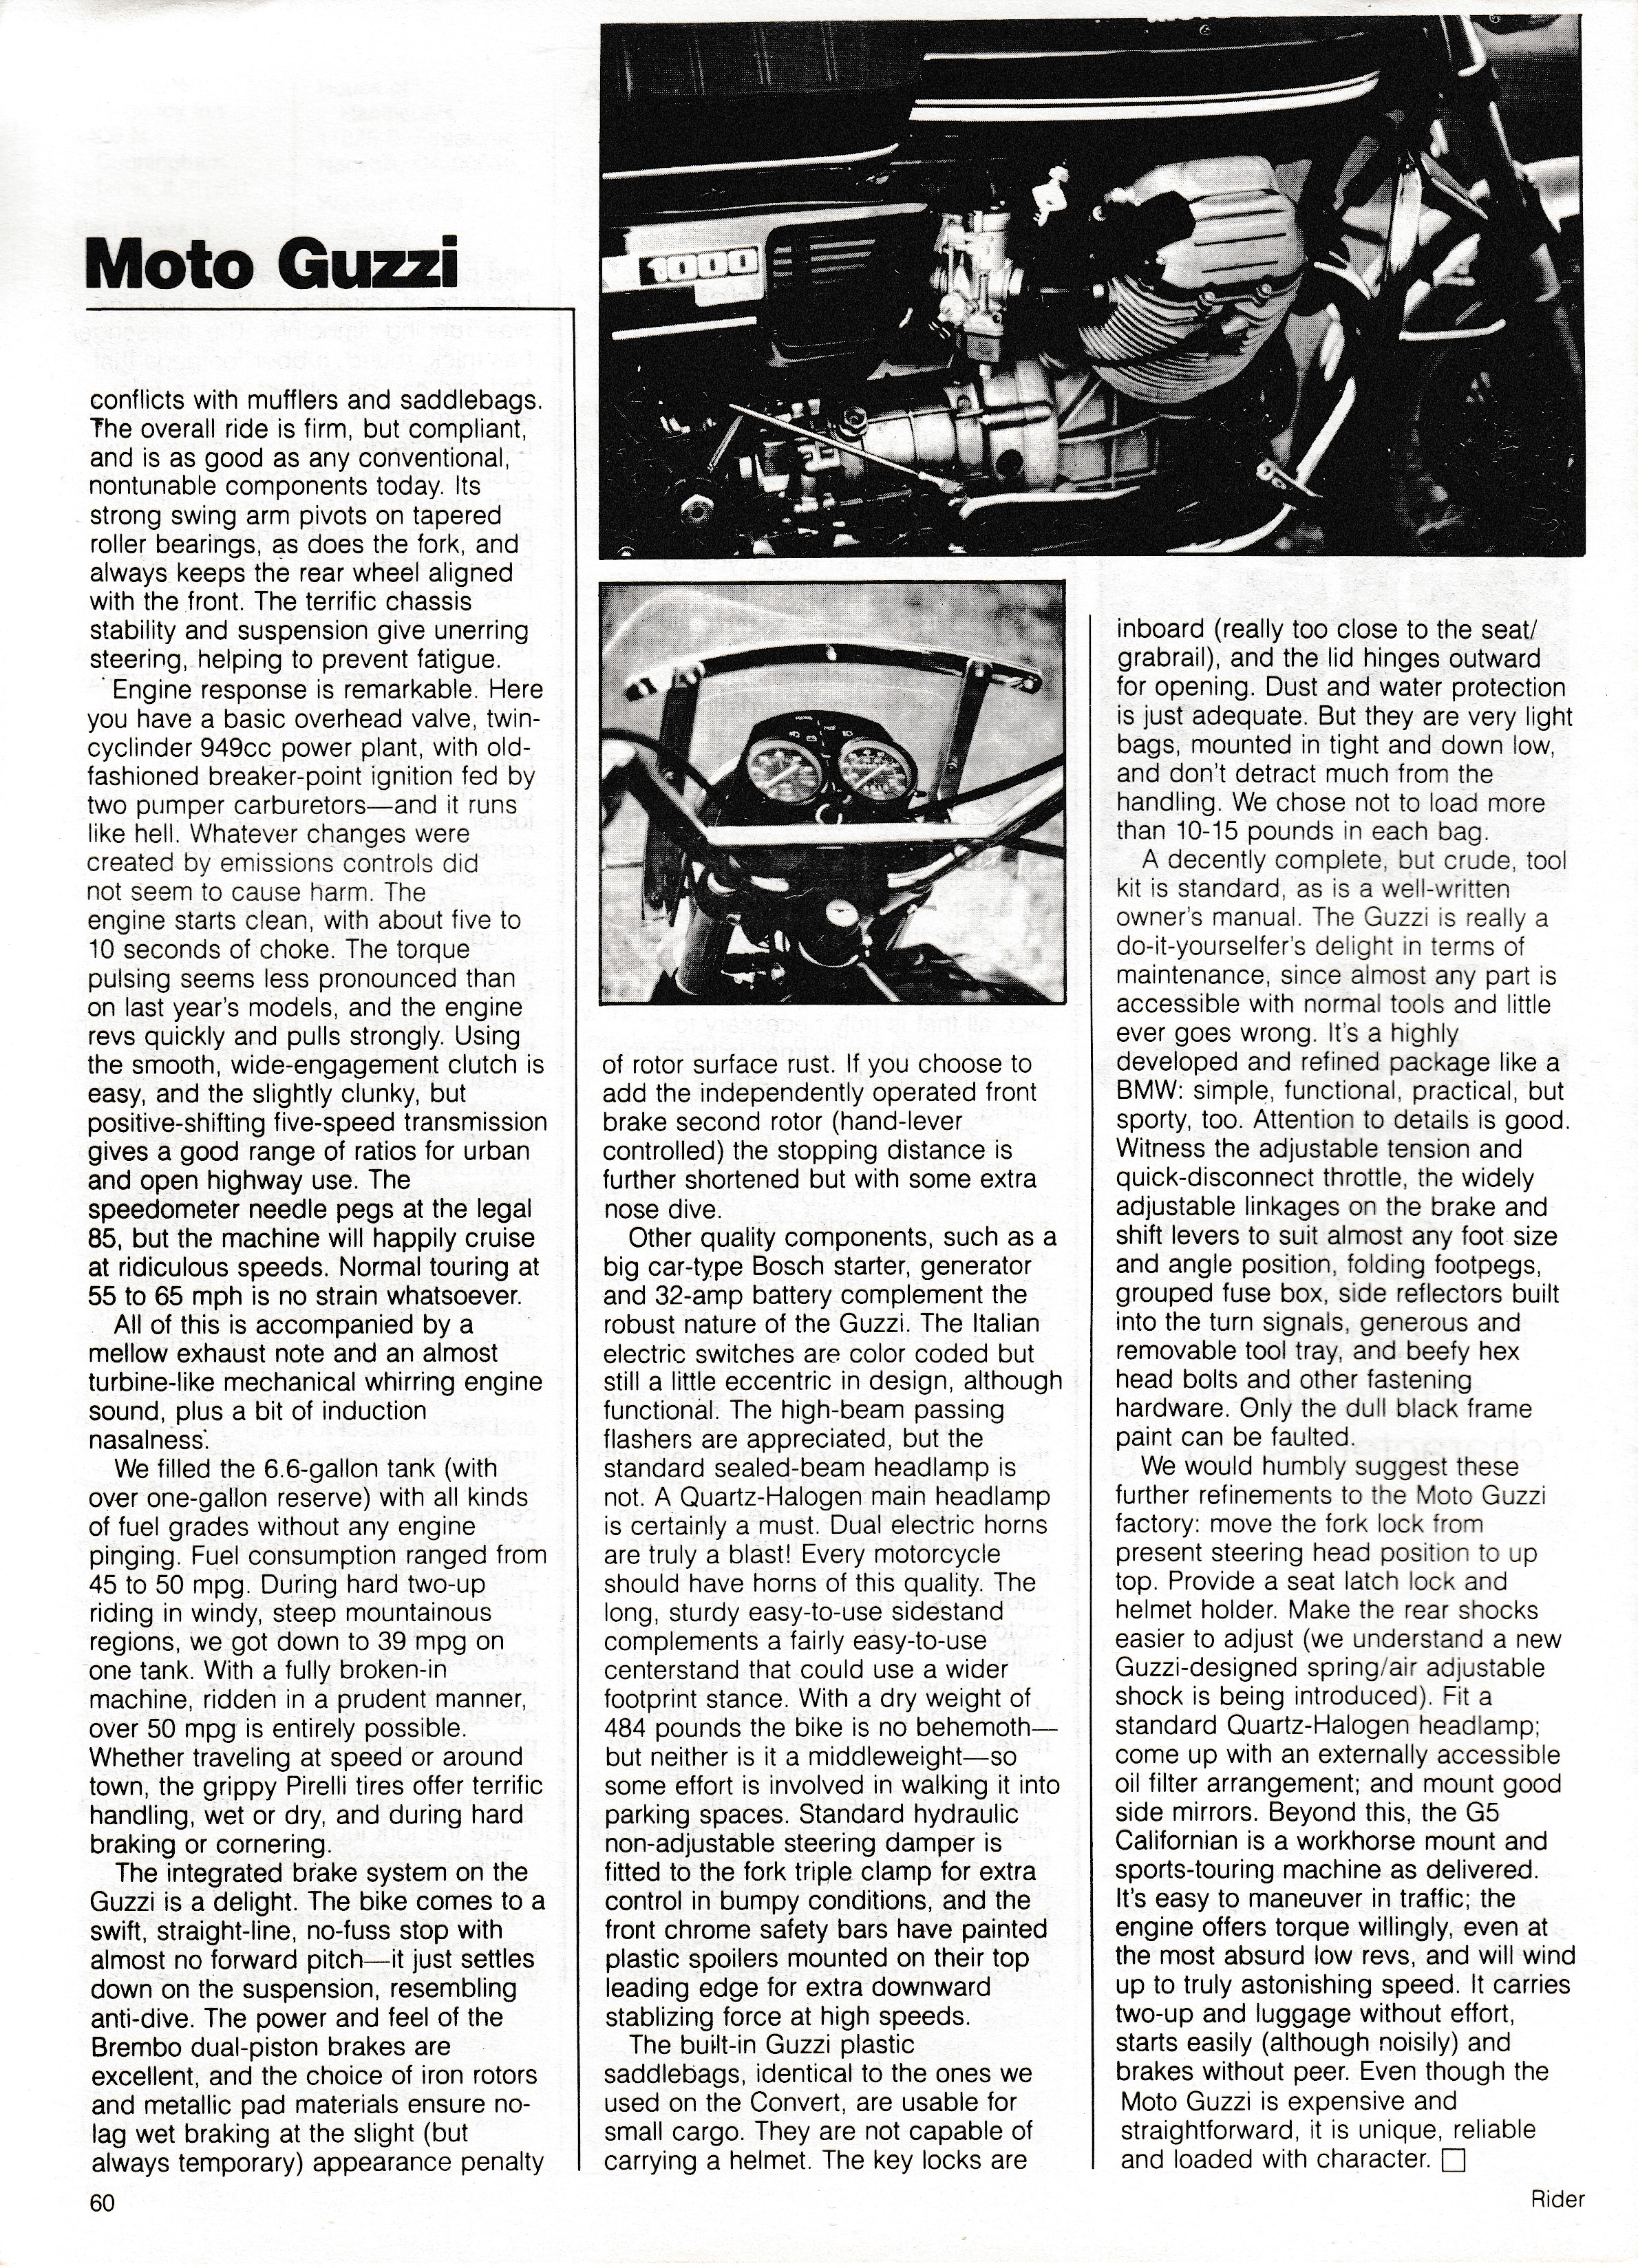 Article - Rider (1982 January) Tour-testing Moto Guzzi G5 Californian